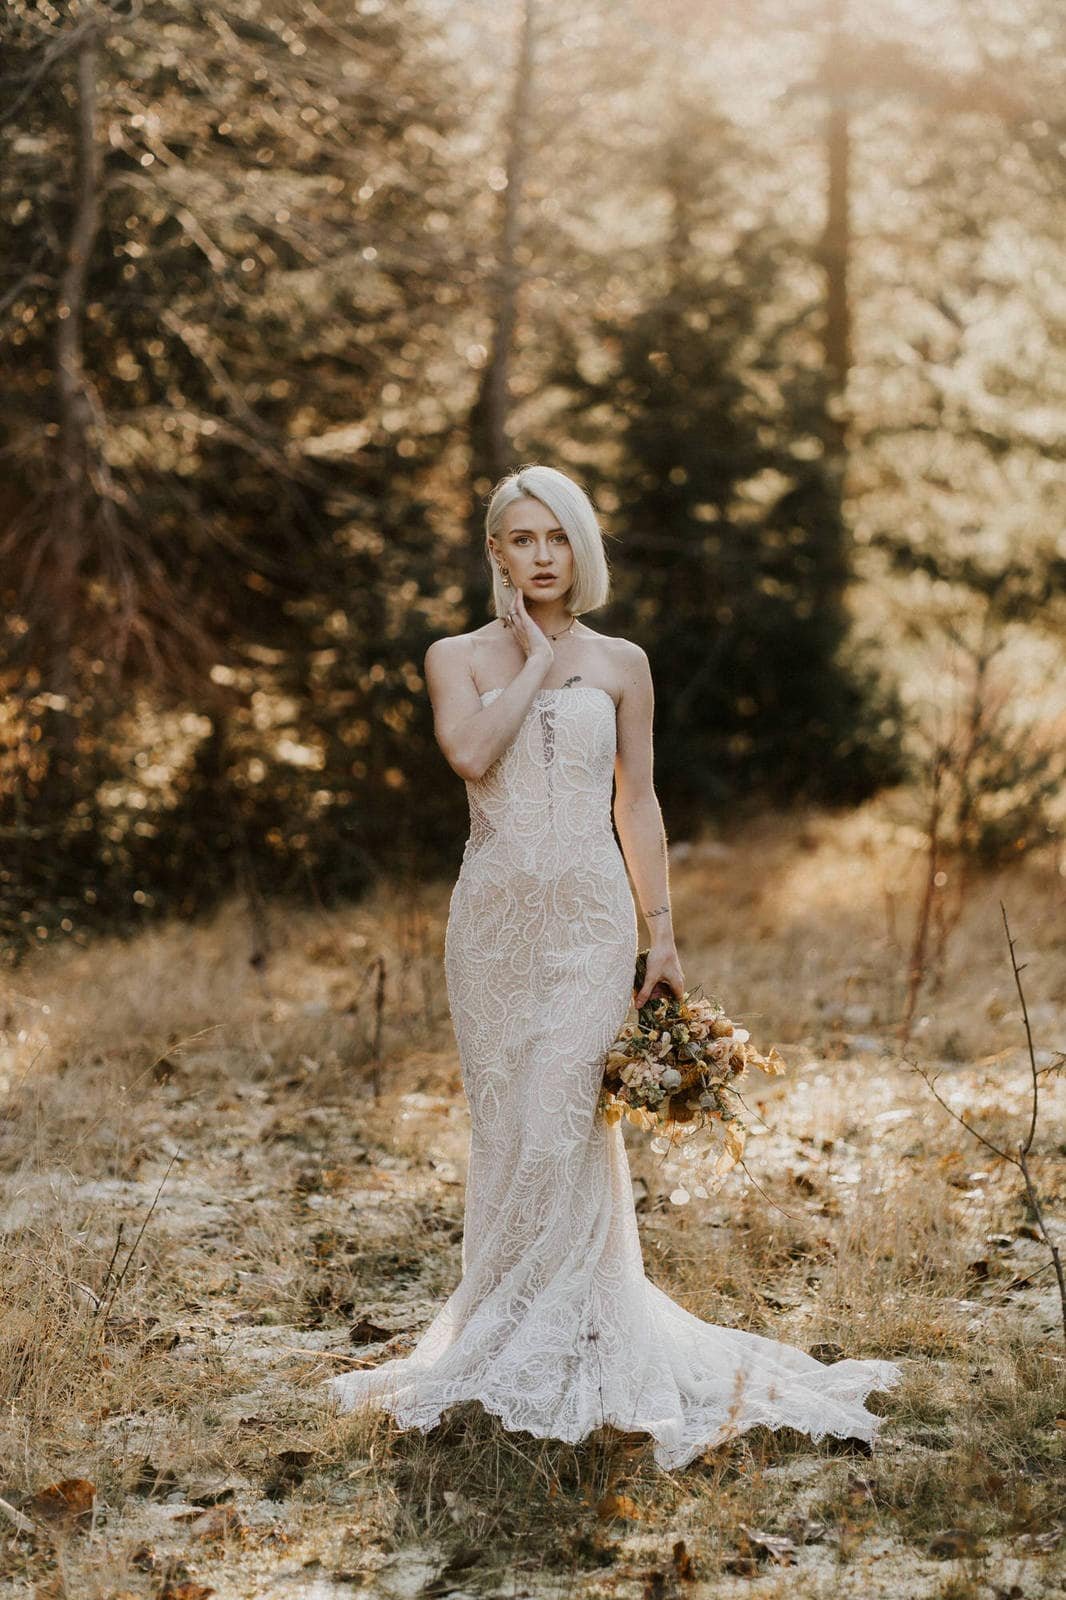 Piper wedding gown from all who wander.